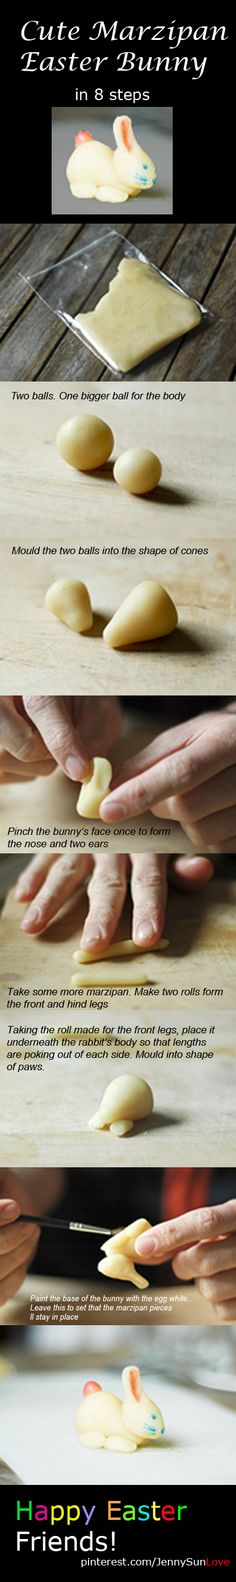 how to make a marzipan (easter) bunny in 8 steps